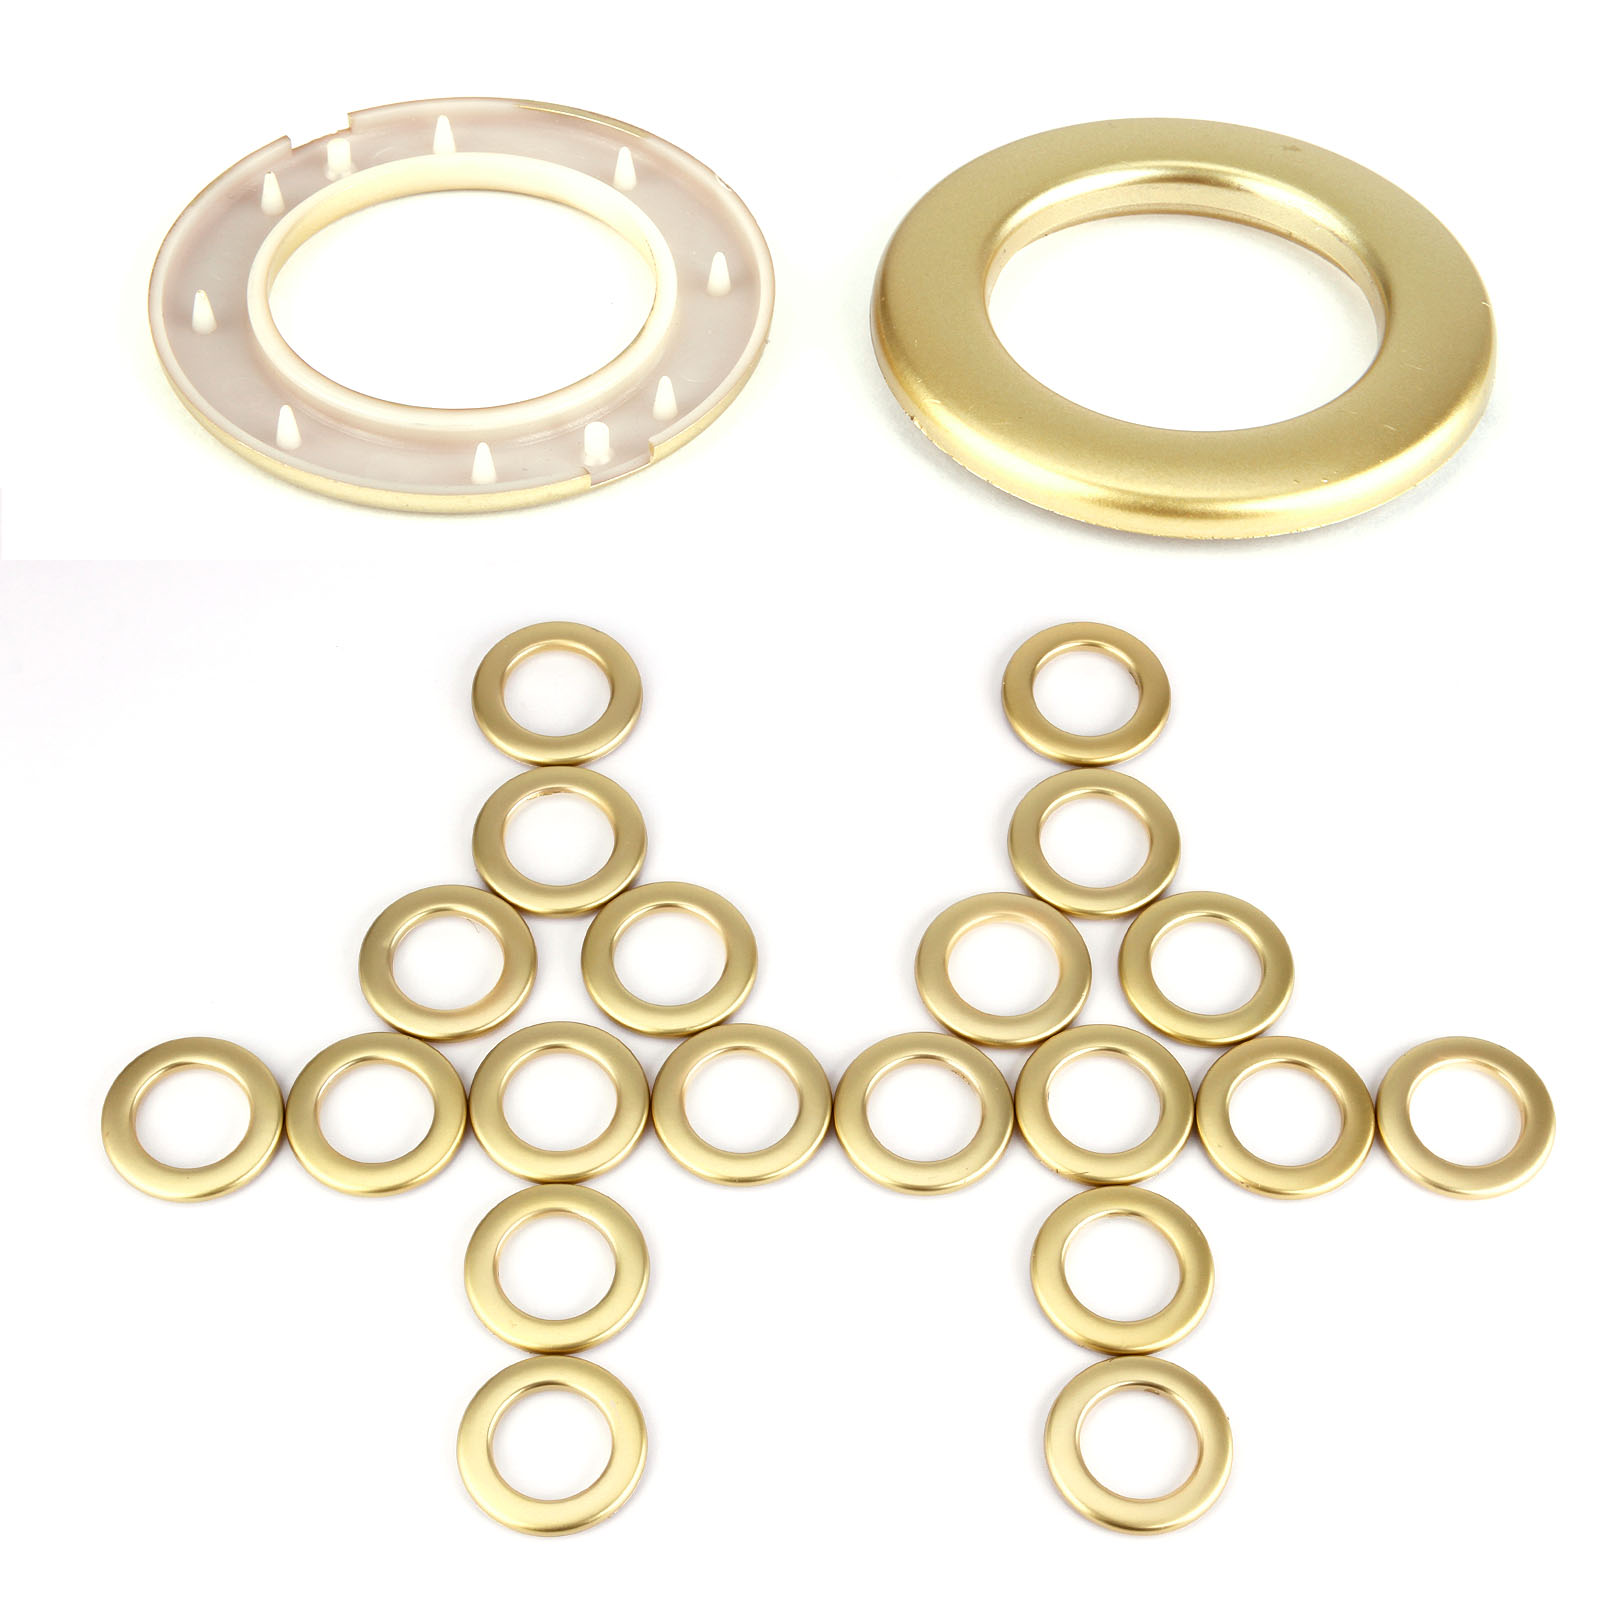 20x Round Snap Fix Ring For Eyelet Curtain Circle Slide